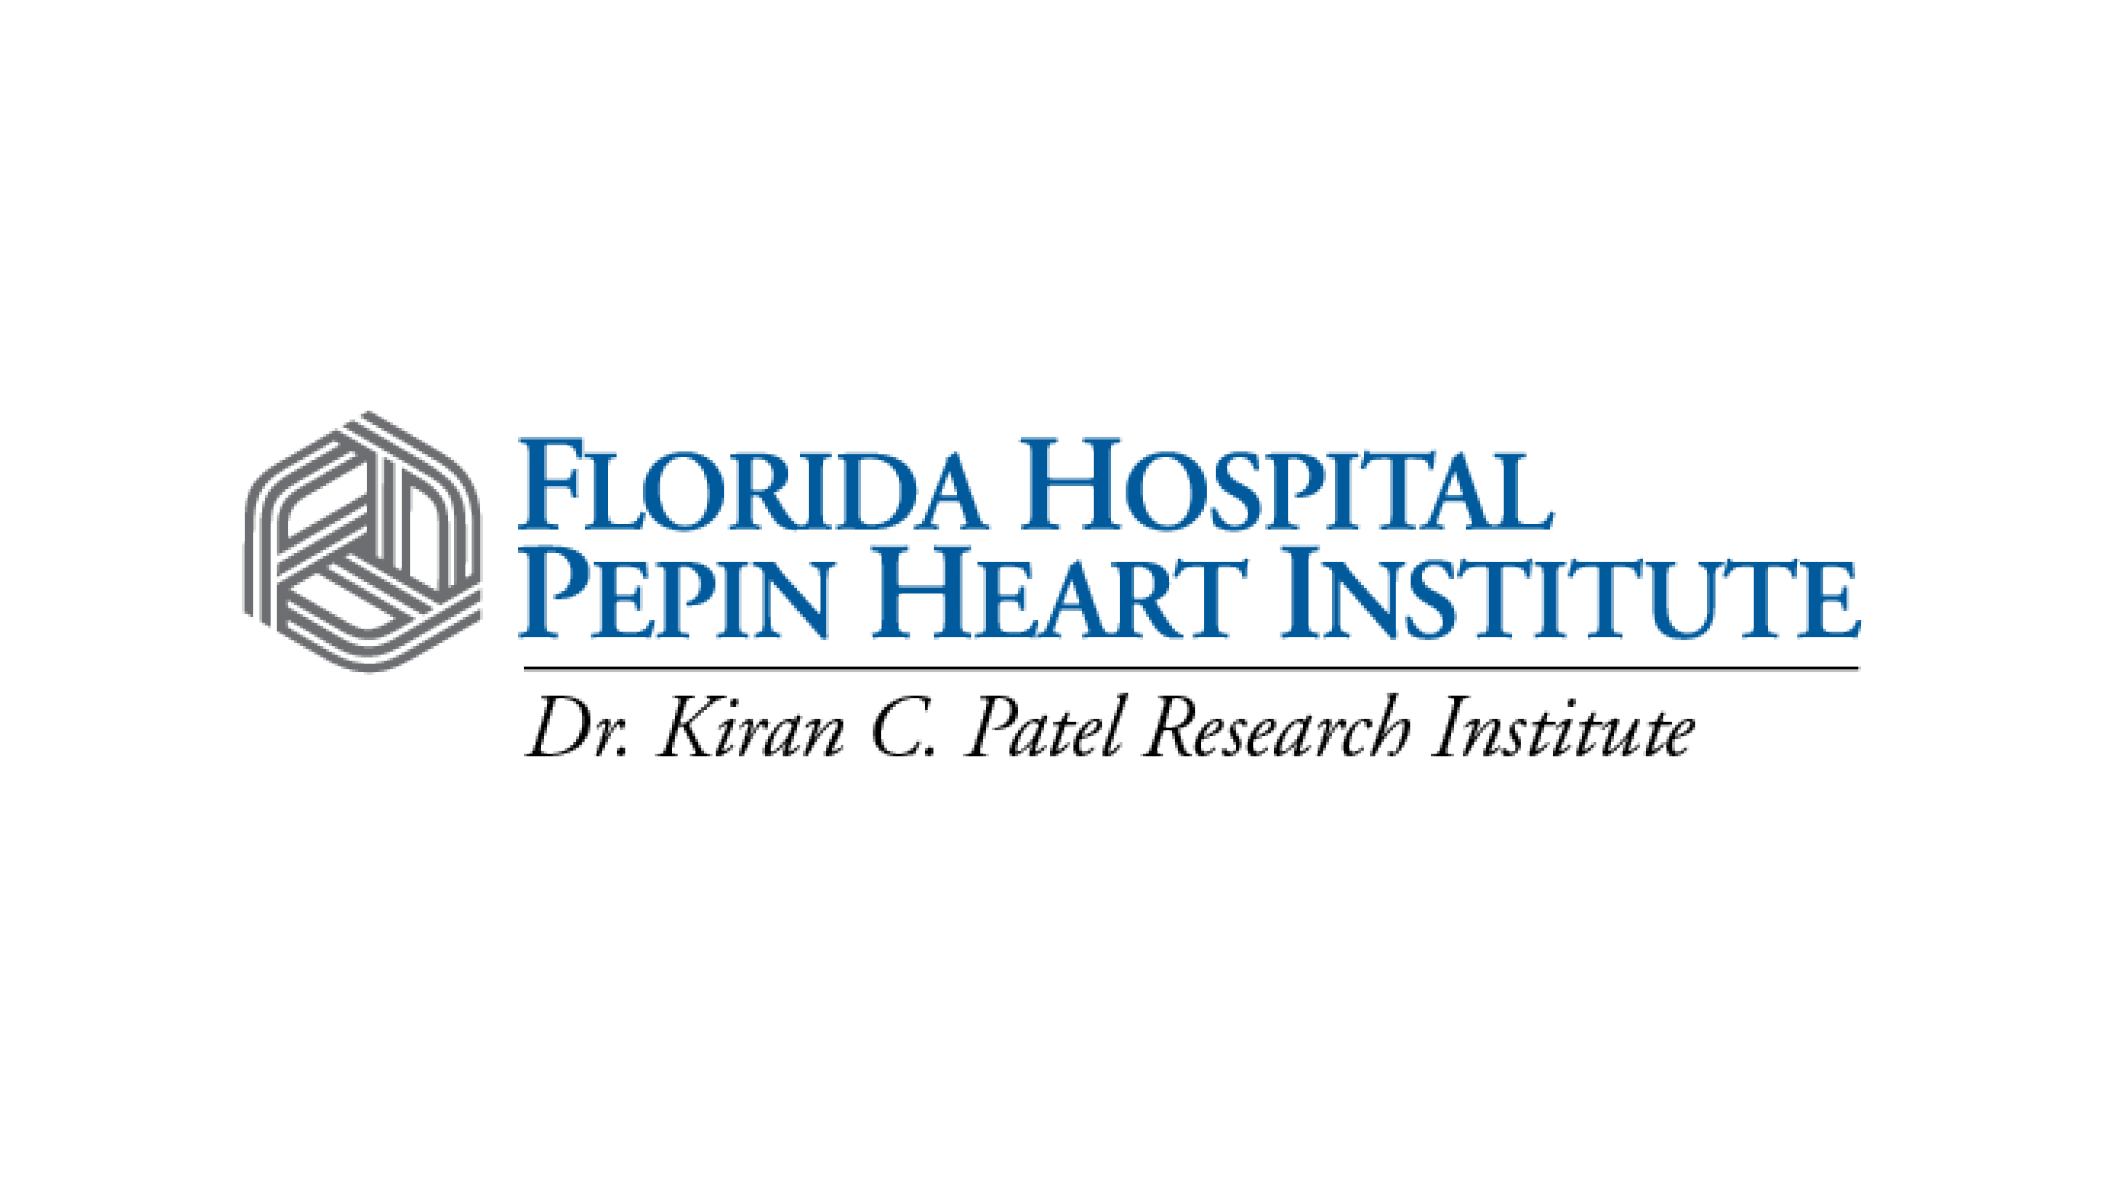 Florida Hospital Pepin Heart Institute